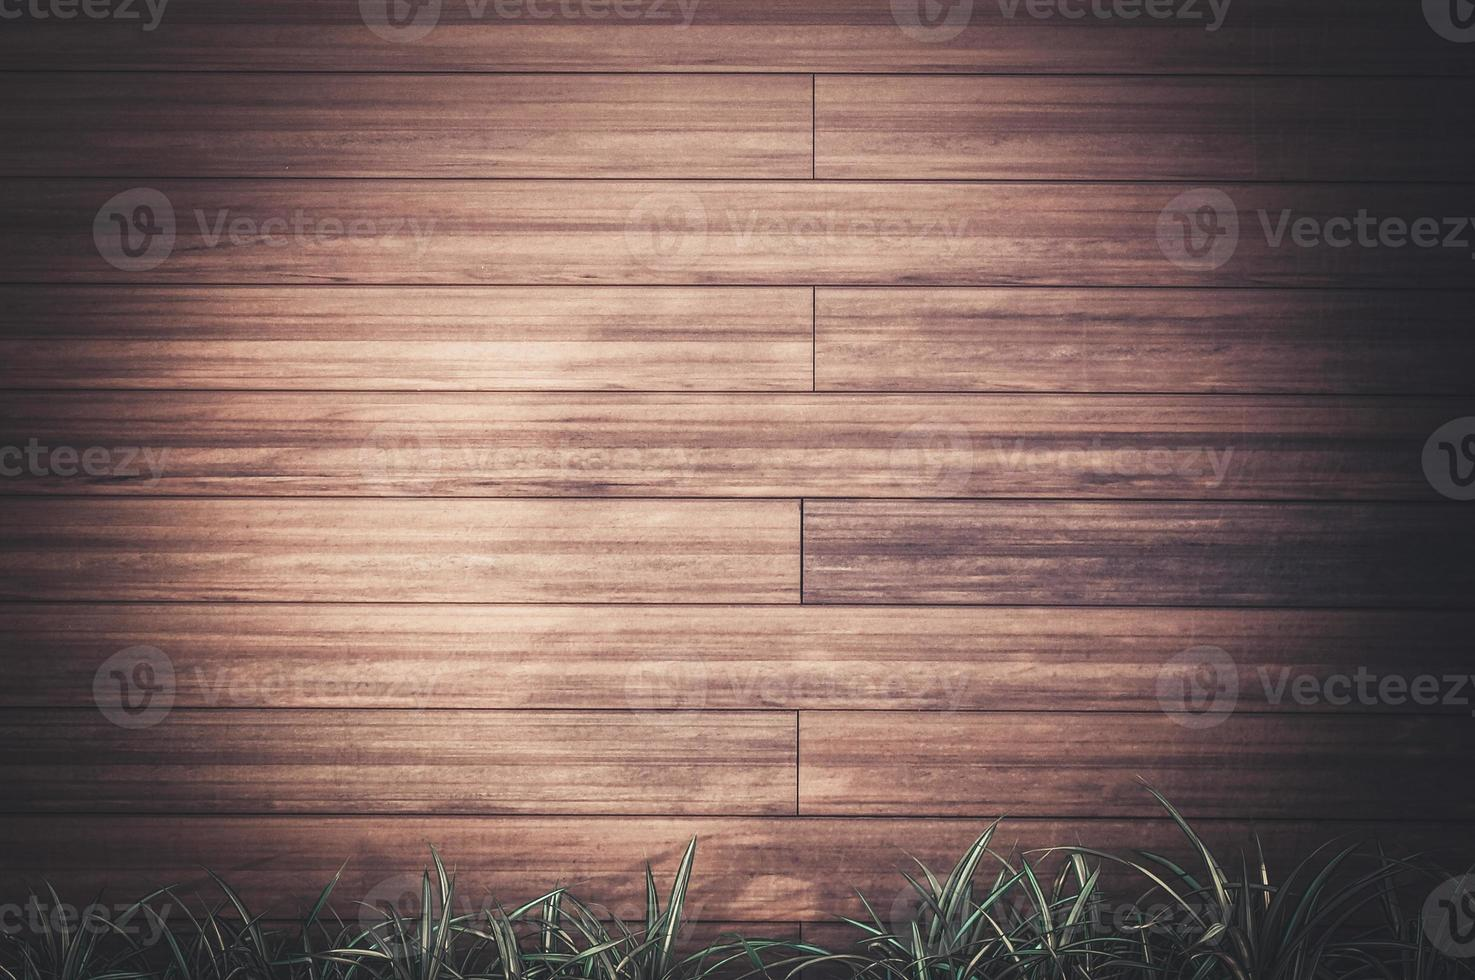 Wood texture backgrounds with vintage edit photo